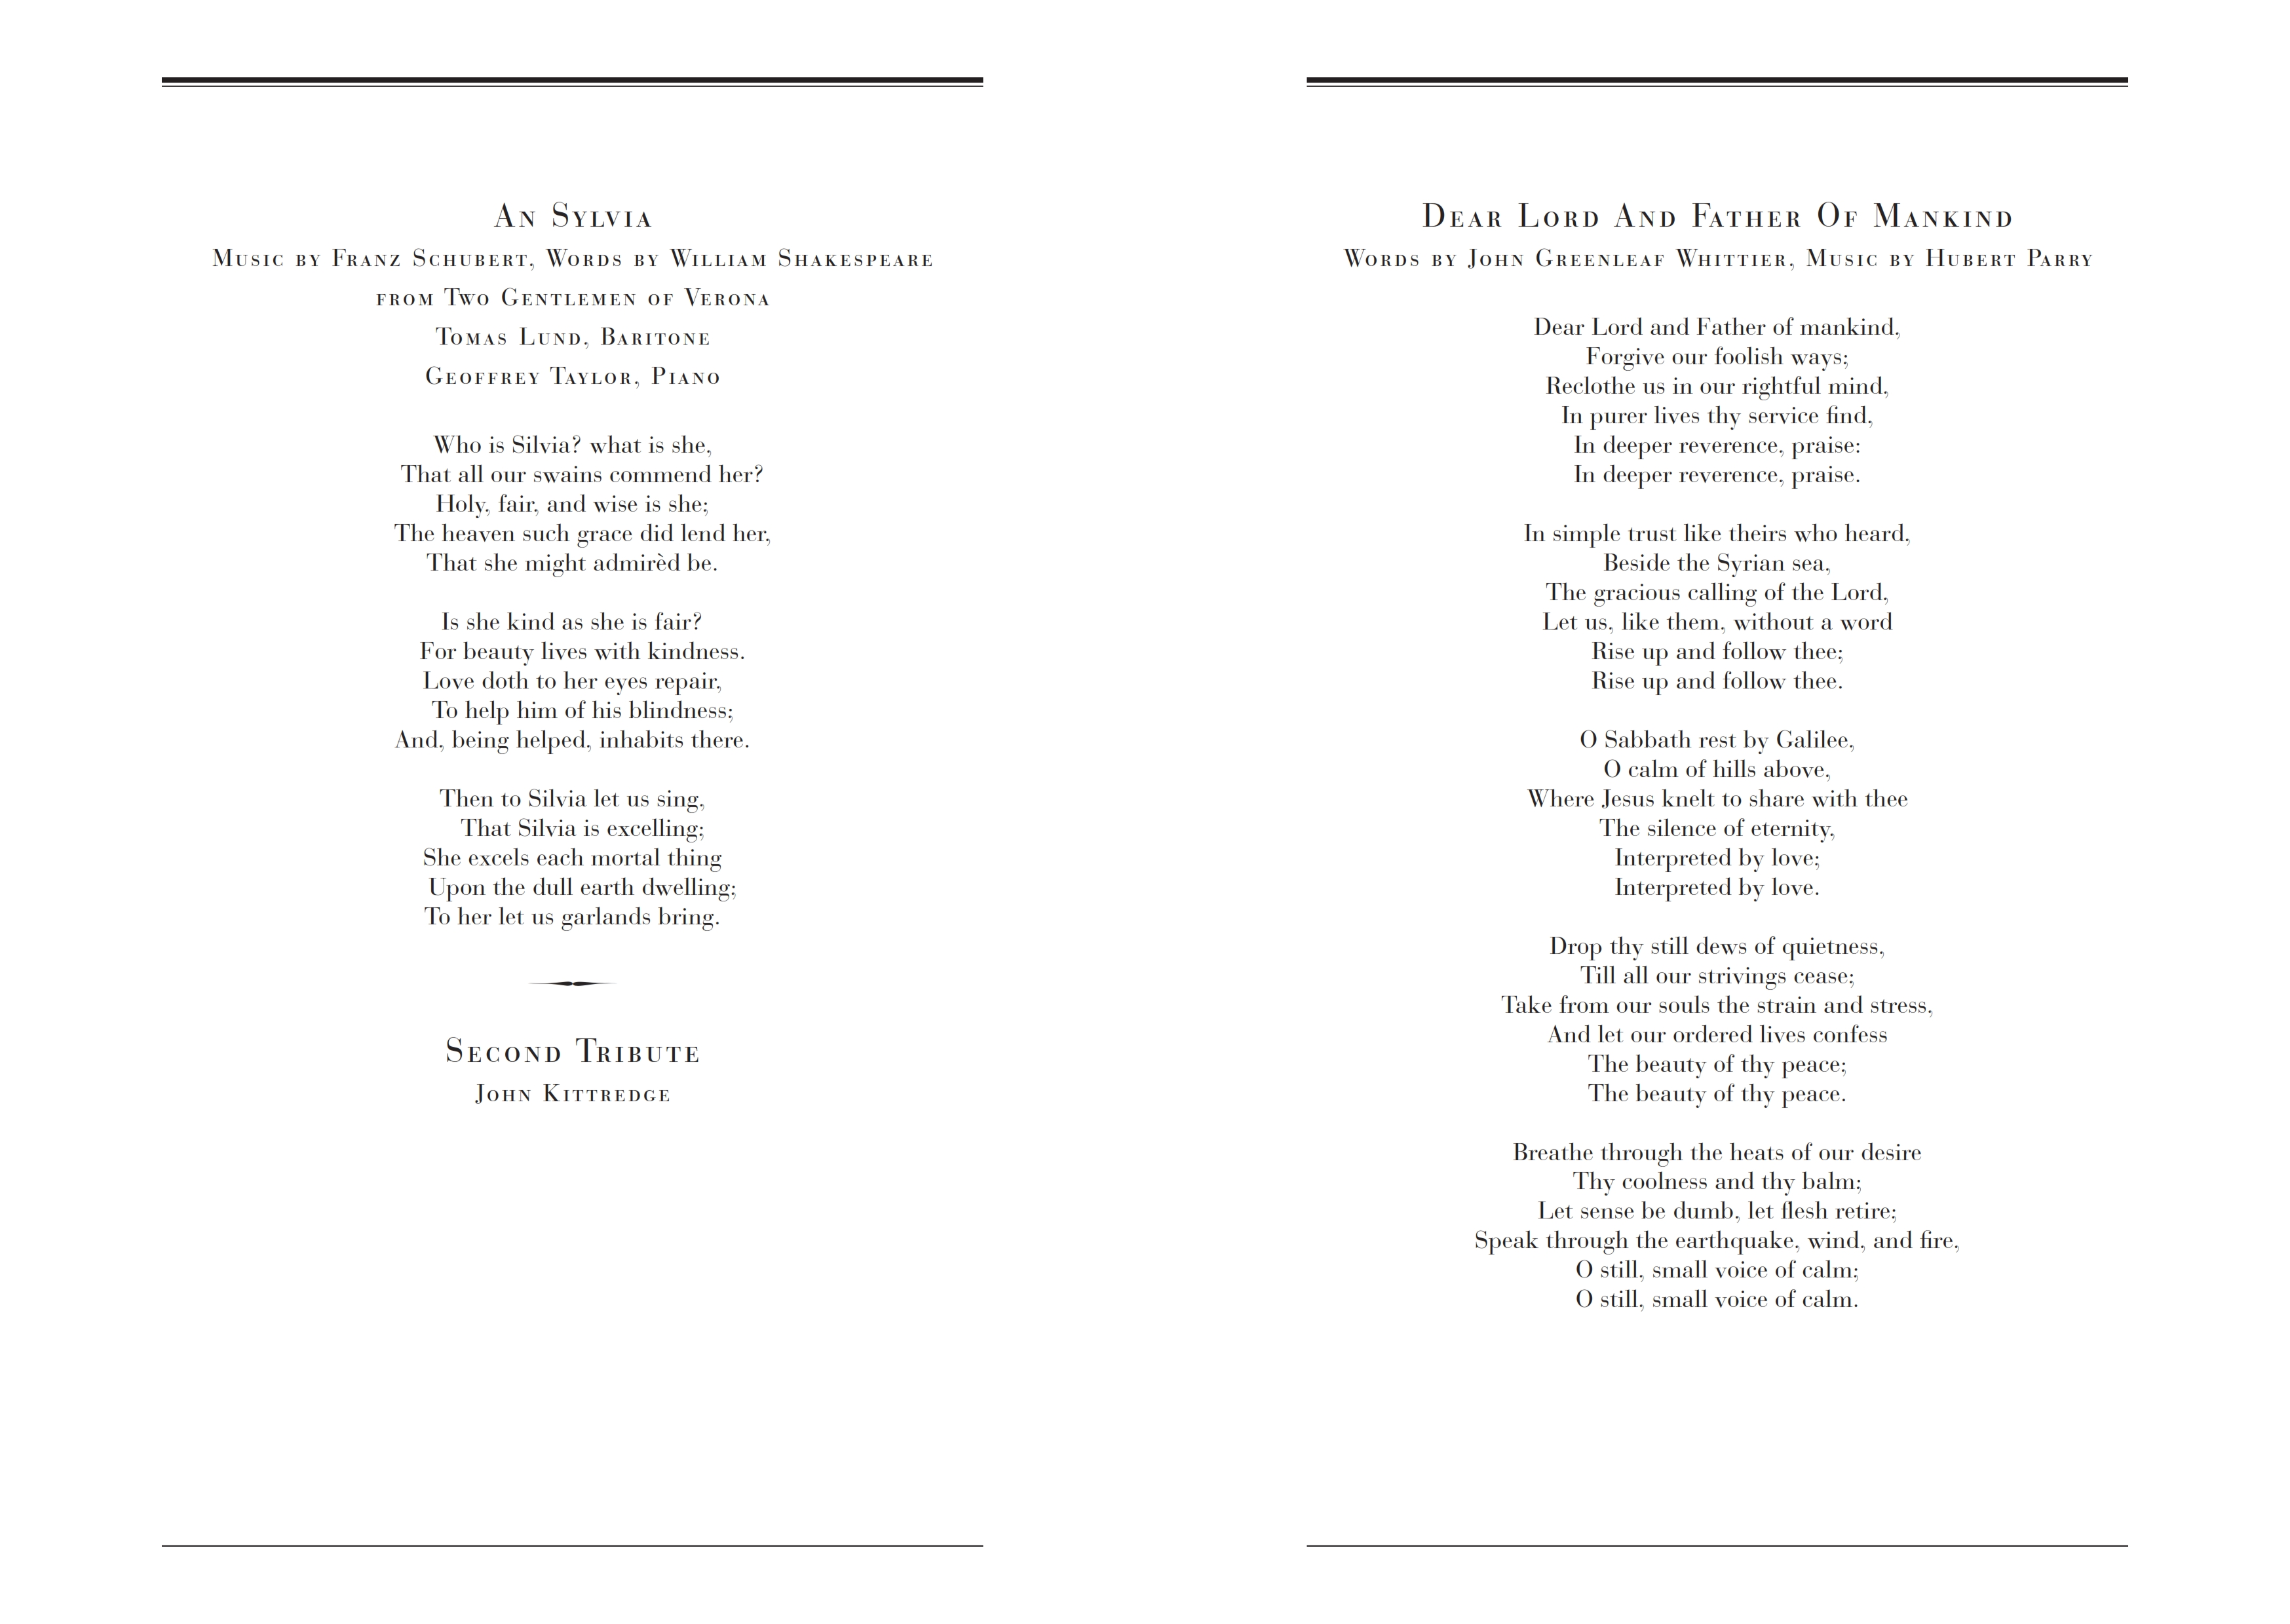 Funeral stationery - The Order of Service